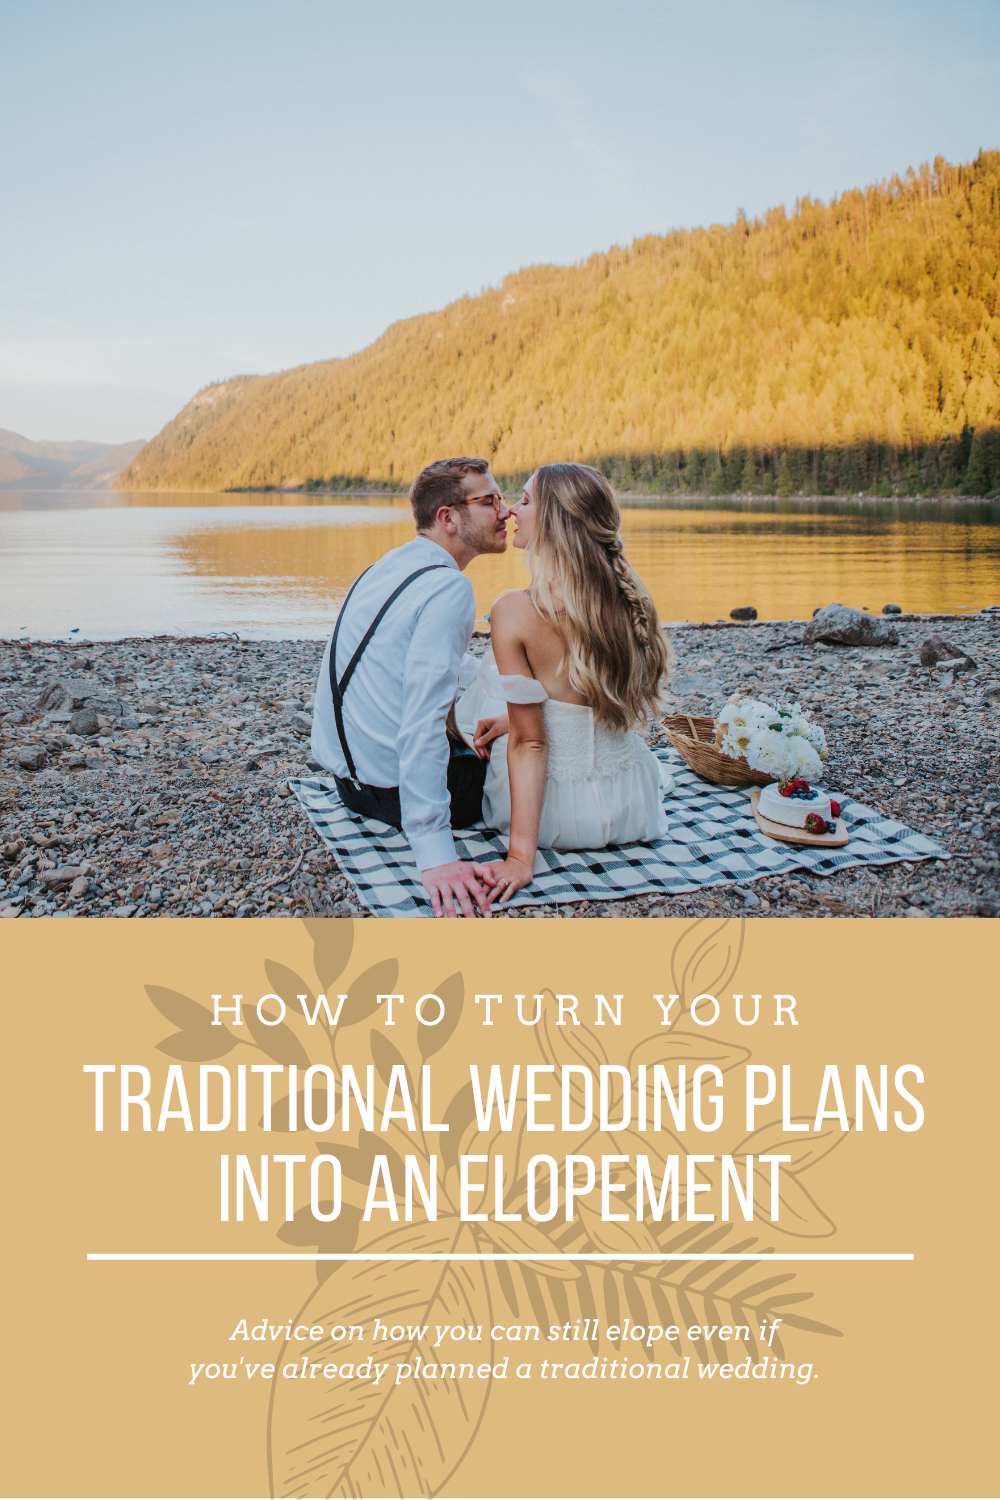 How to turn your traditional wedding into an elopement